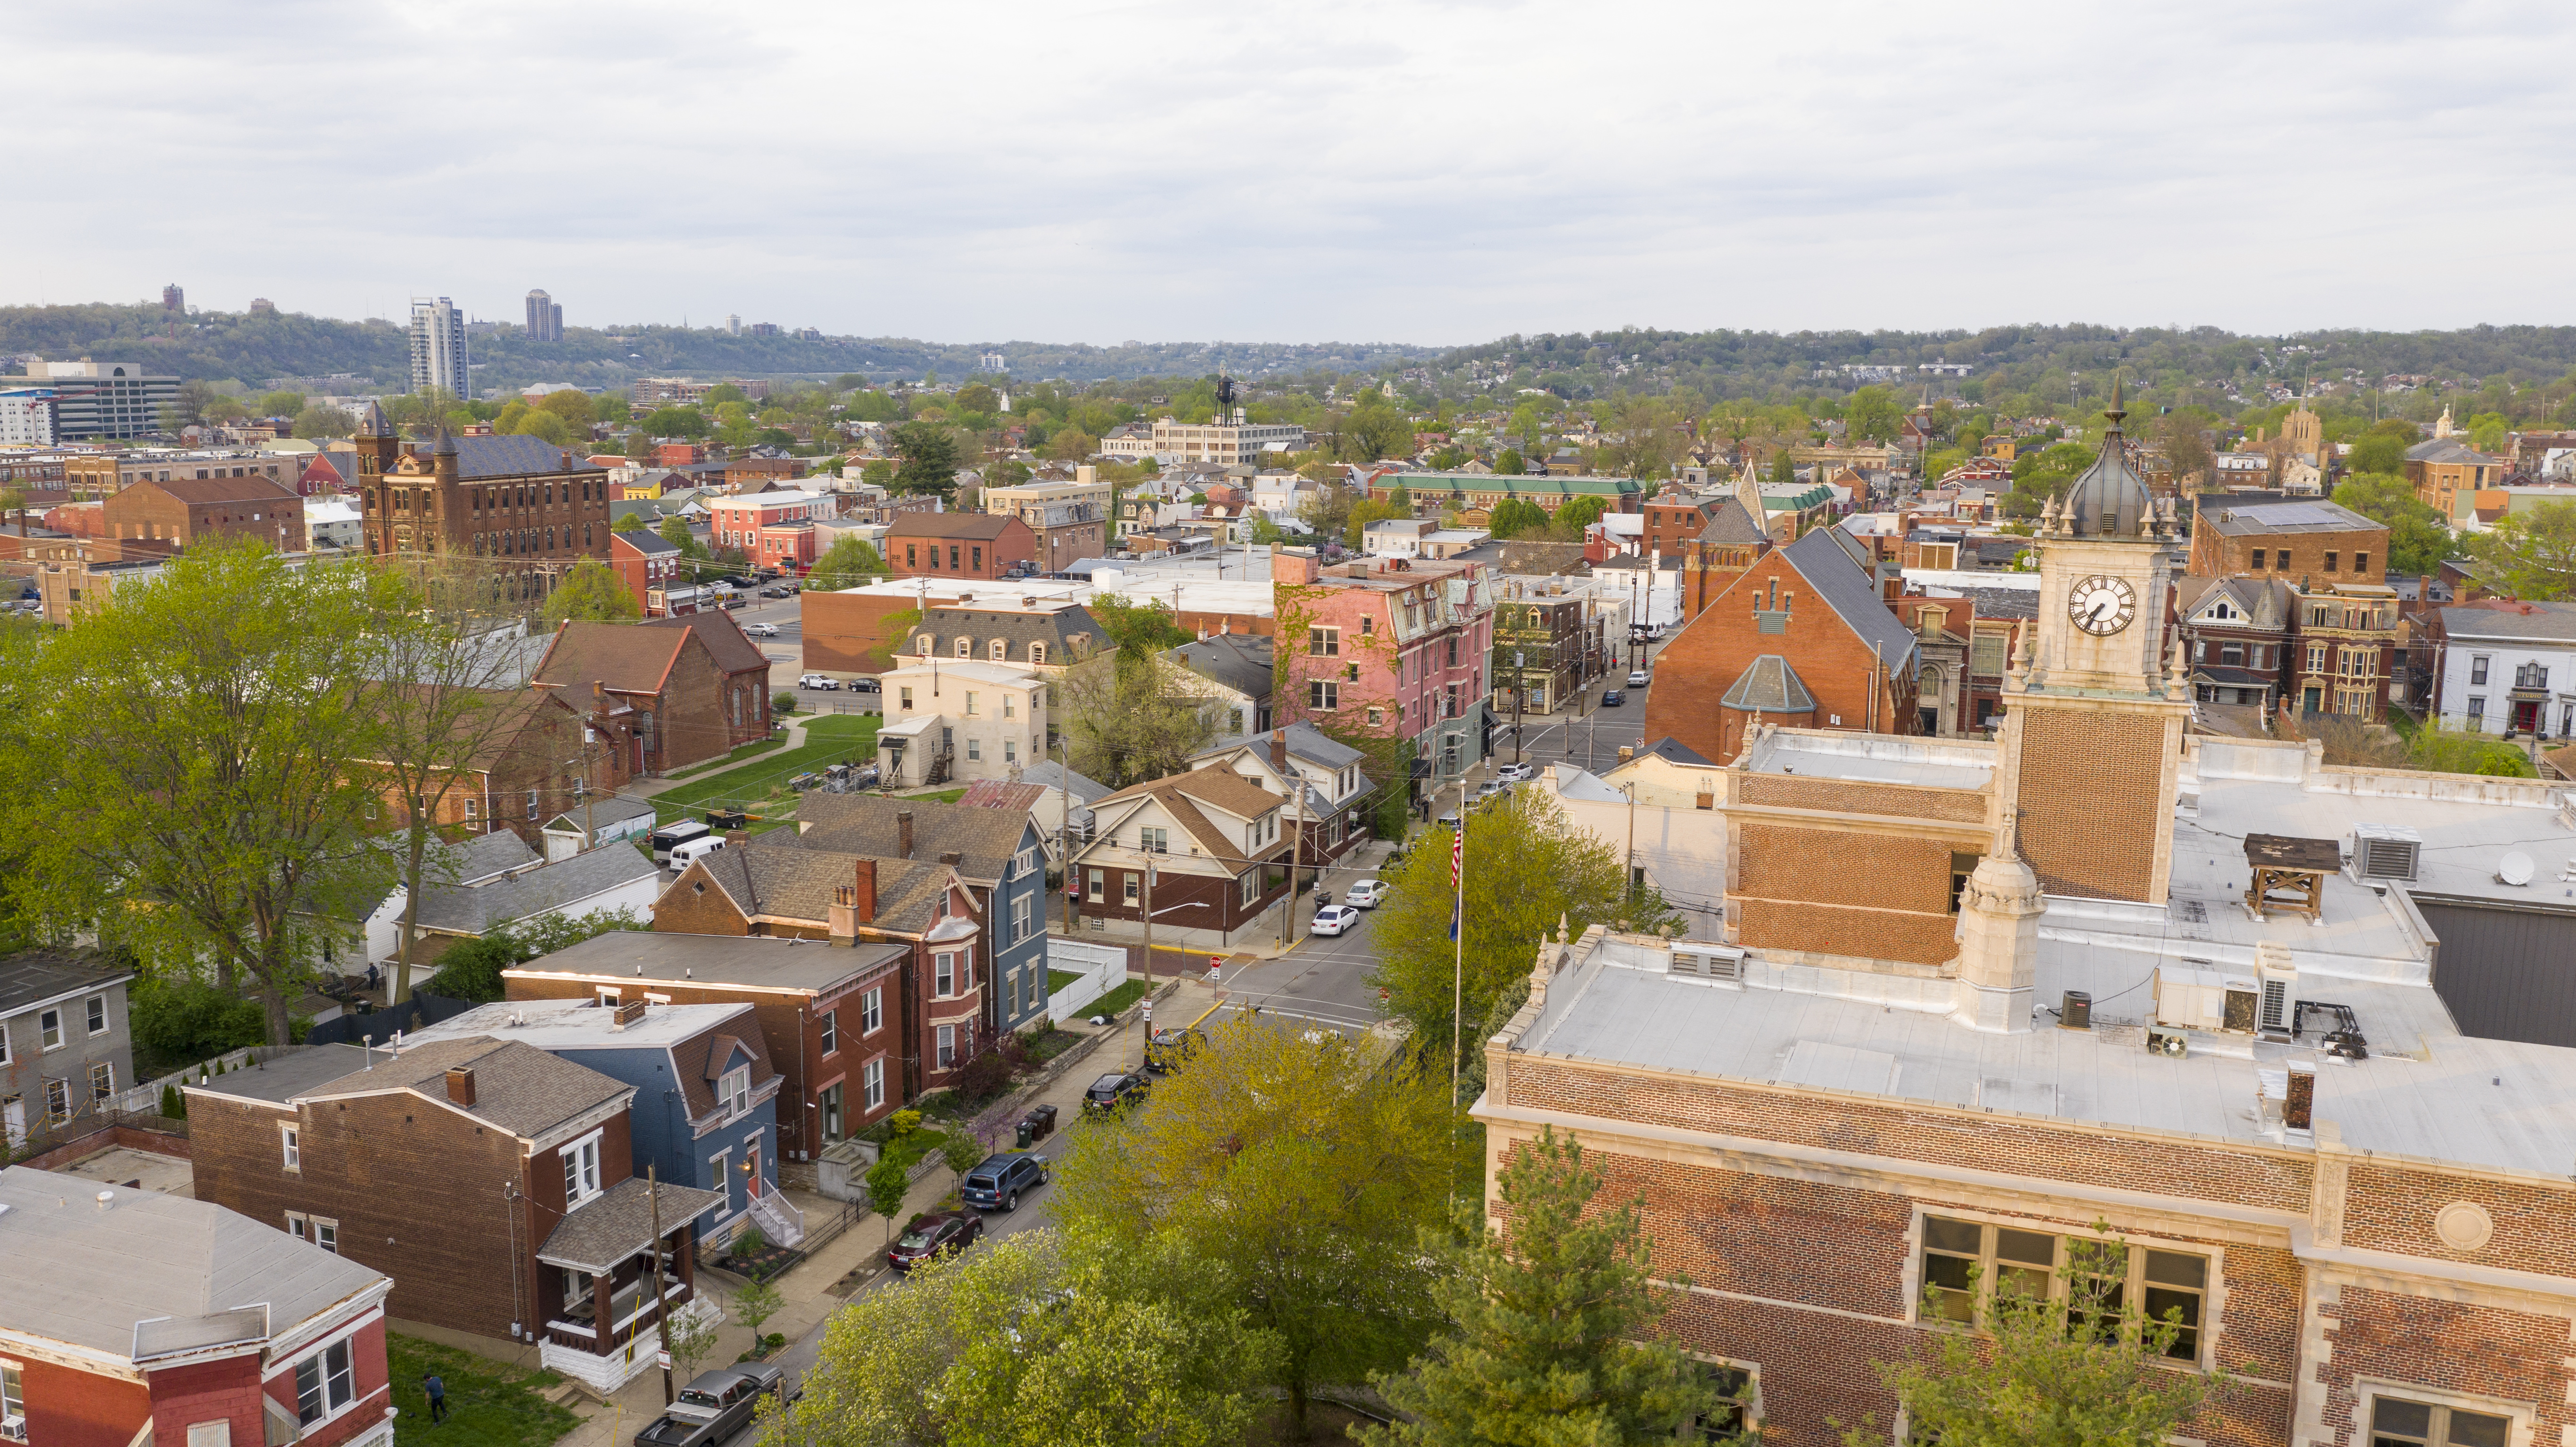 Colorful history and architecture can be found in Newport Kentucky